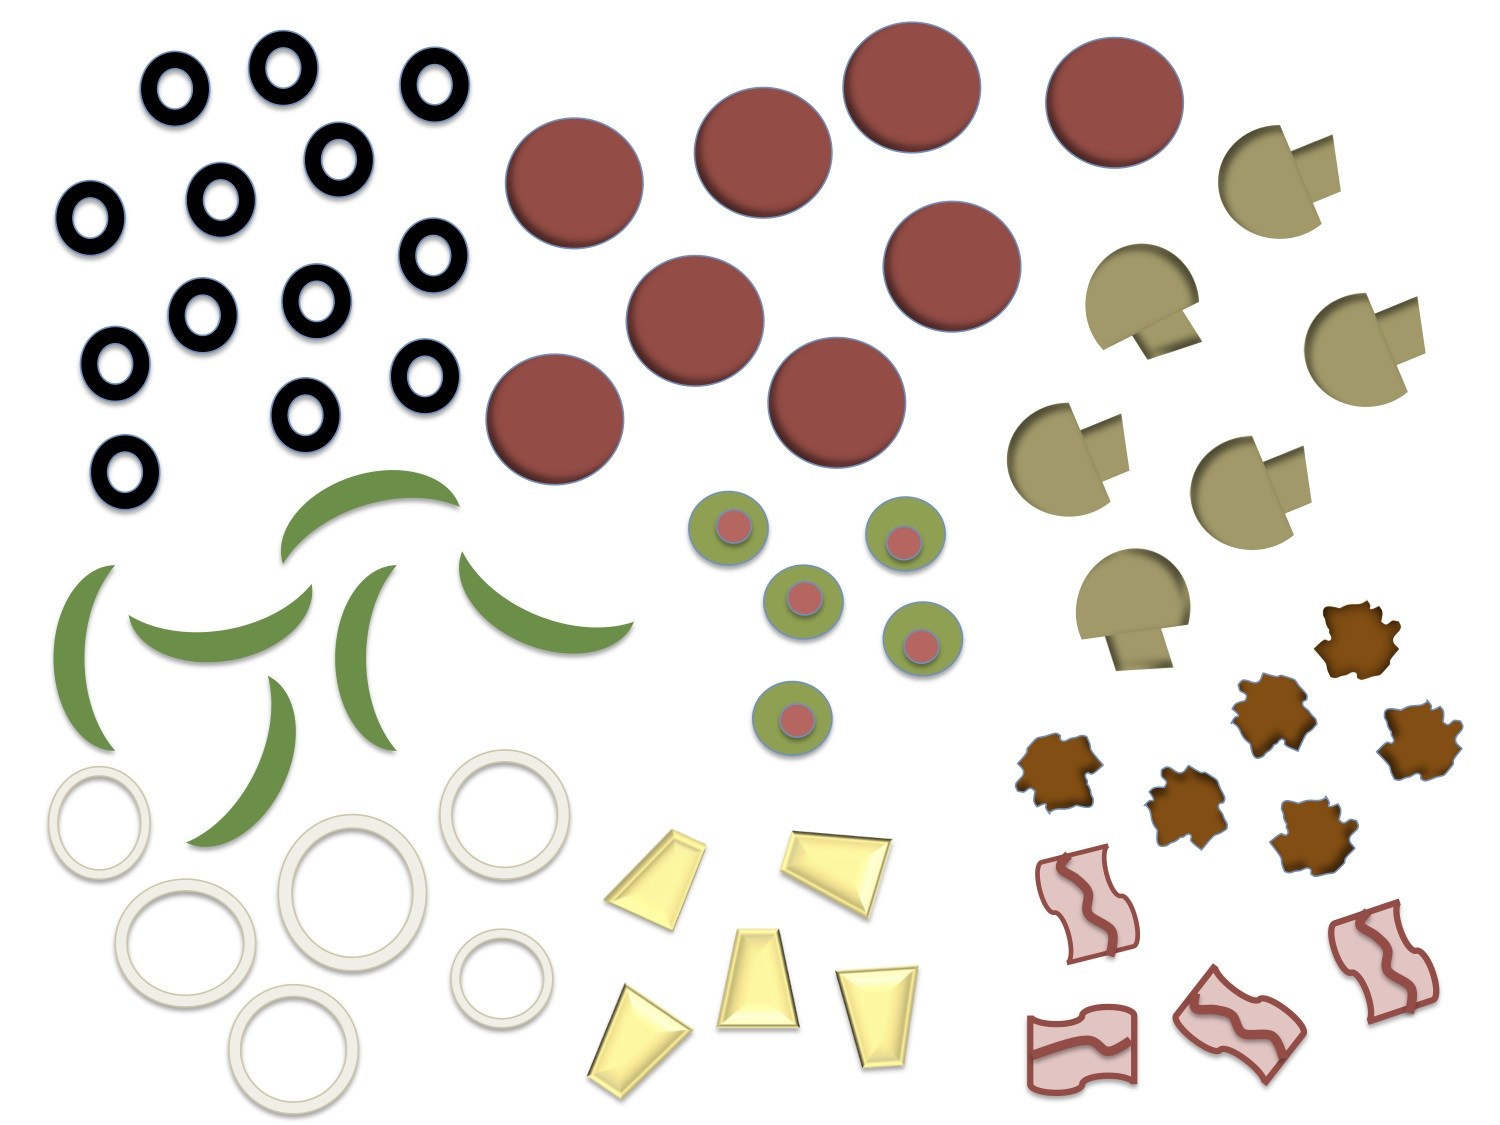 Printable Pizza Toppings Clipart Free Cl-Printable Pizza Toppings Clipart Free Clipart-19